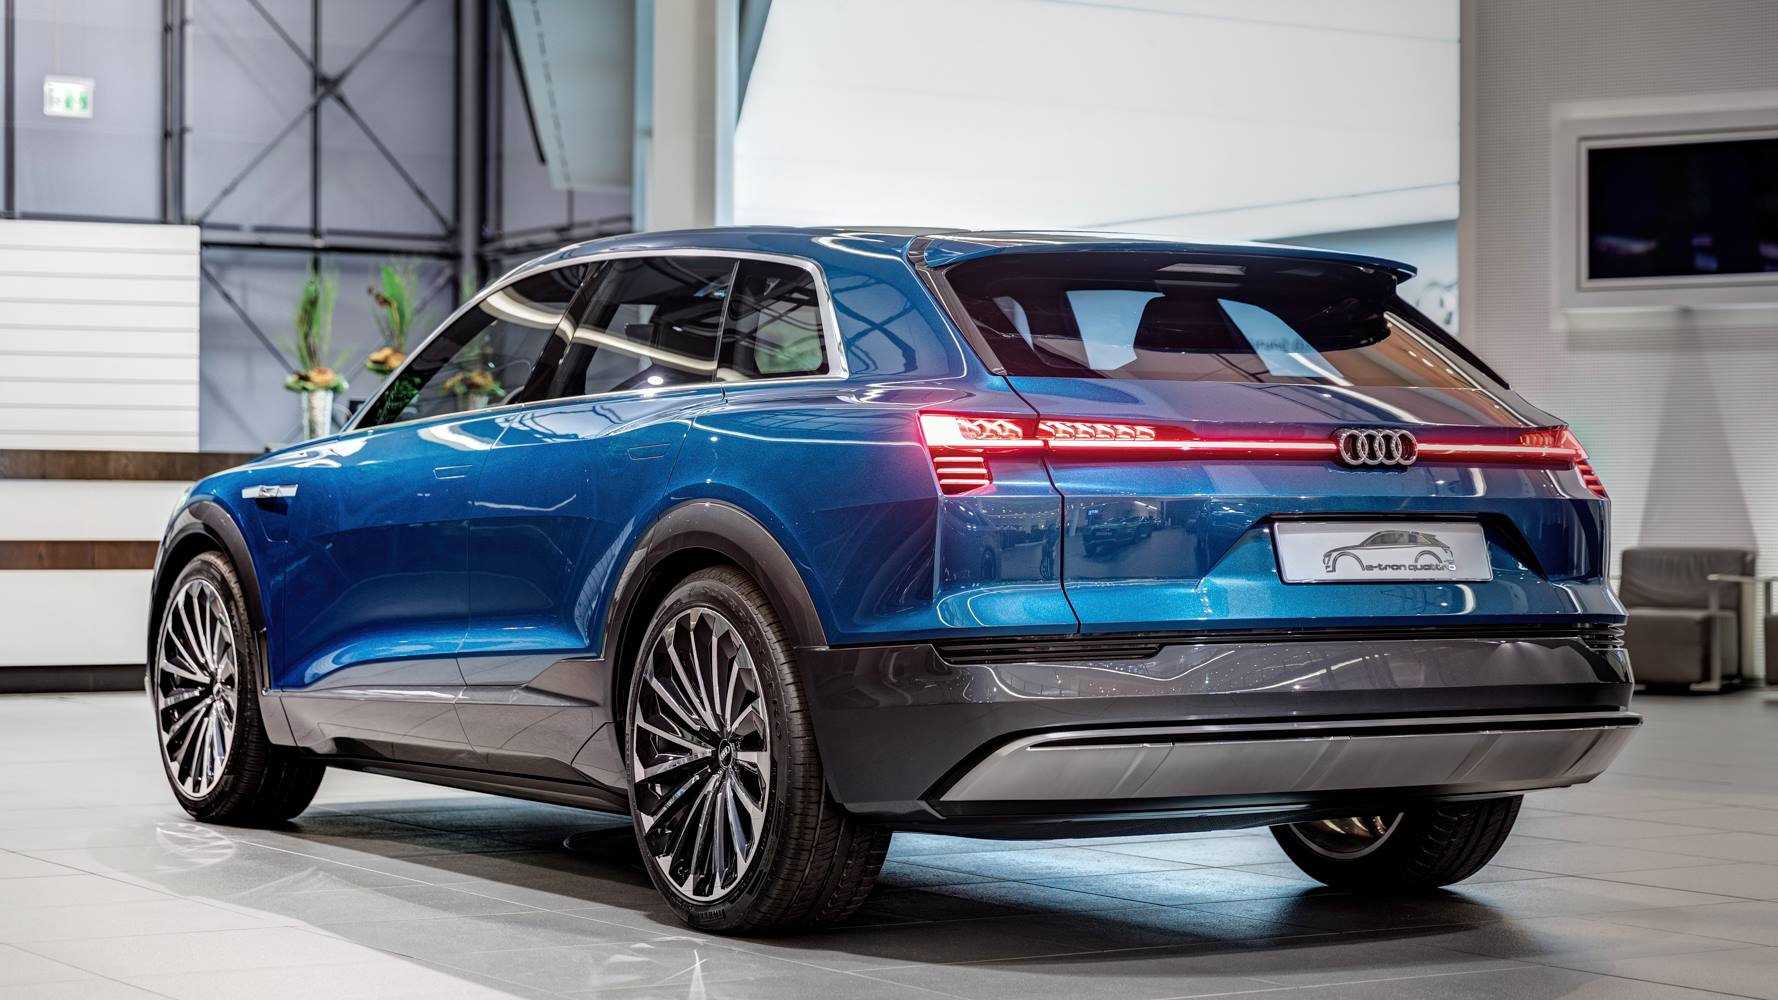 2018 audi electric suv.  audi suv audi etron quattro concept arrives at forum neckarsulm and 2018 audi electric suv